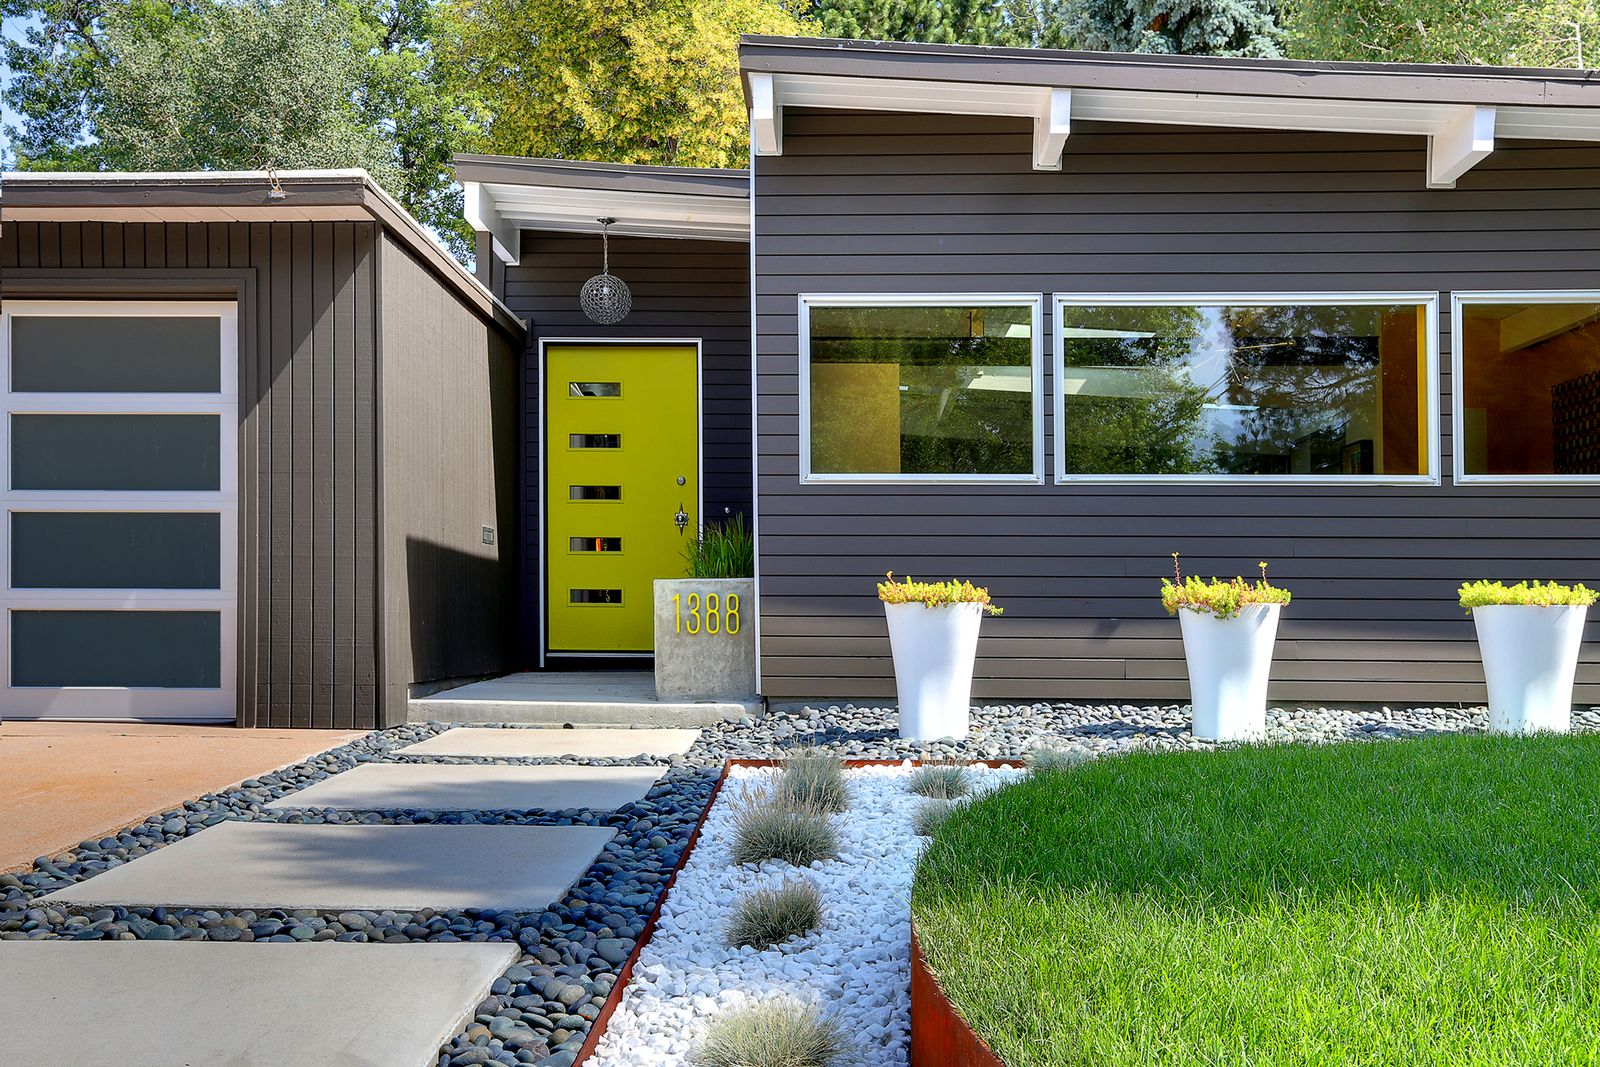 Neon Green Sedum Matches The Front Door The Design Team Also Includes Courtney Mcricka Mid Century Modern Exterior Modern House Colors Mid Century Landscaping